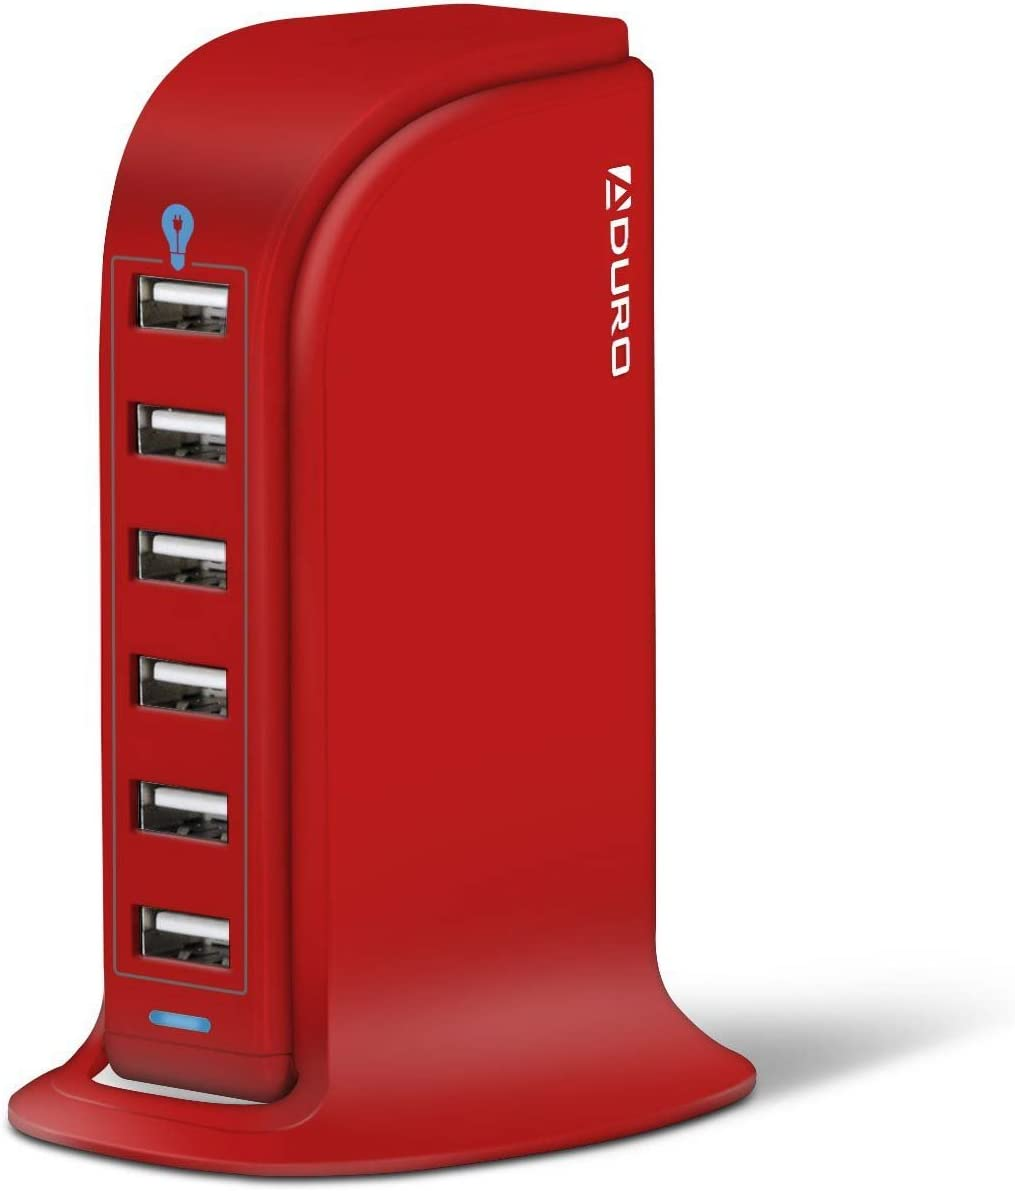 Aduro 40W 6-Port USB Desktop Charging Station Hub Wall Charger for iPhone iPad Tablets Smartphones with Smart Flow (Red)